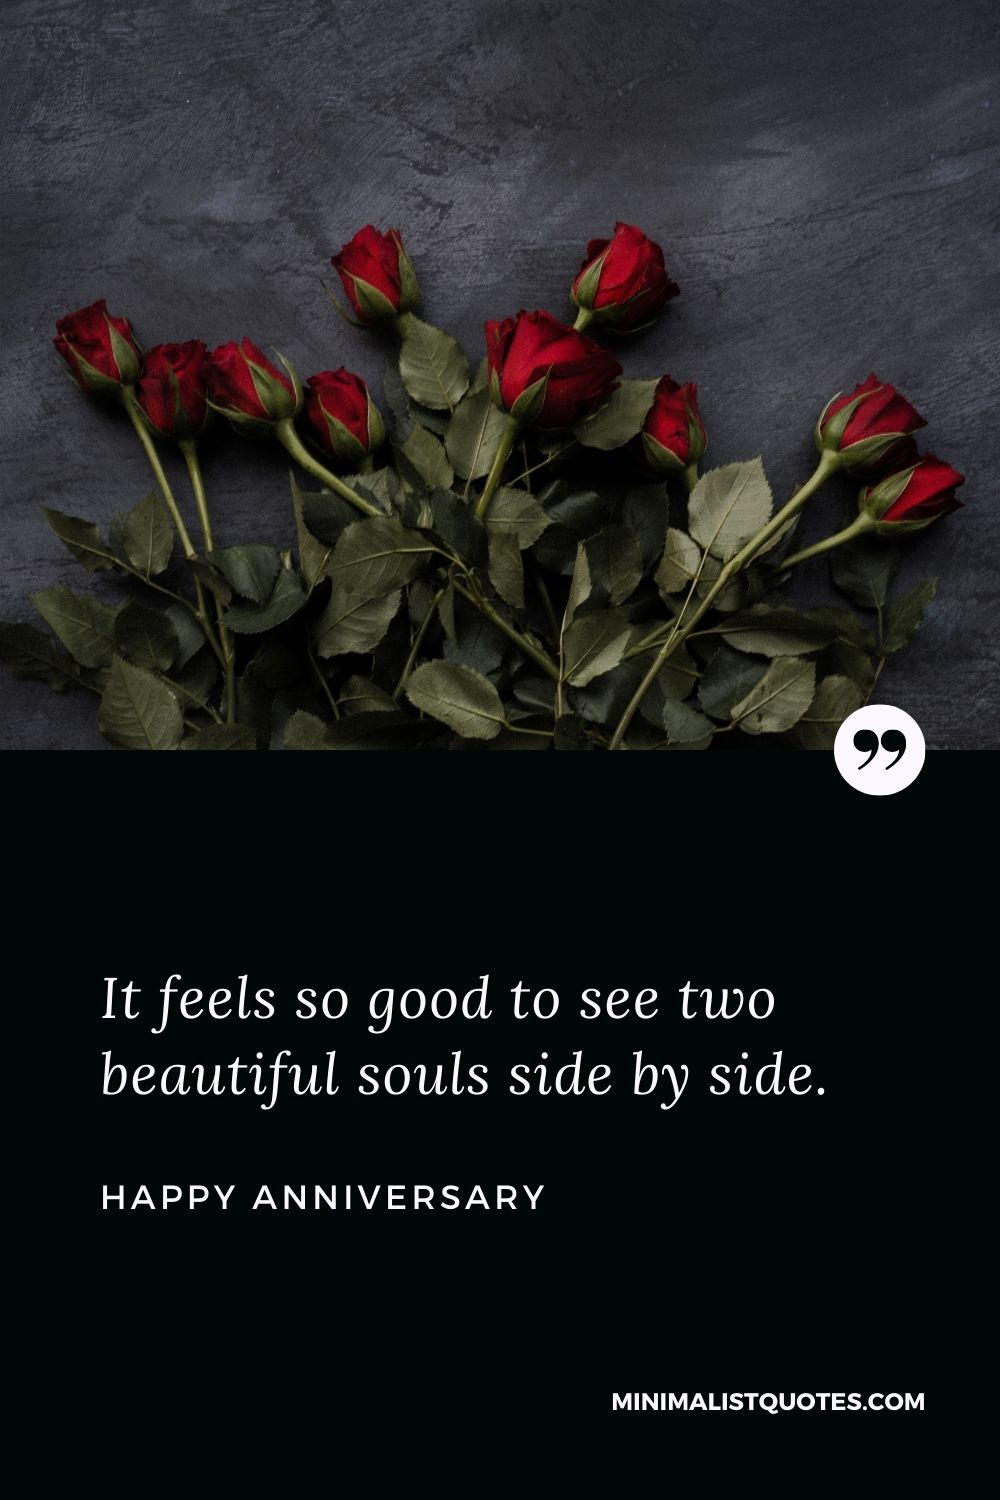 Anniversary Wish & Message With HD Image: It feels so good to see two beautiful souls side by side.